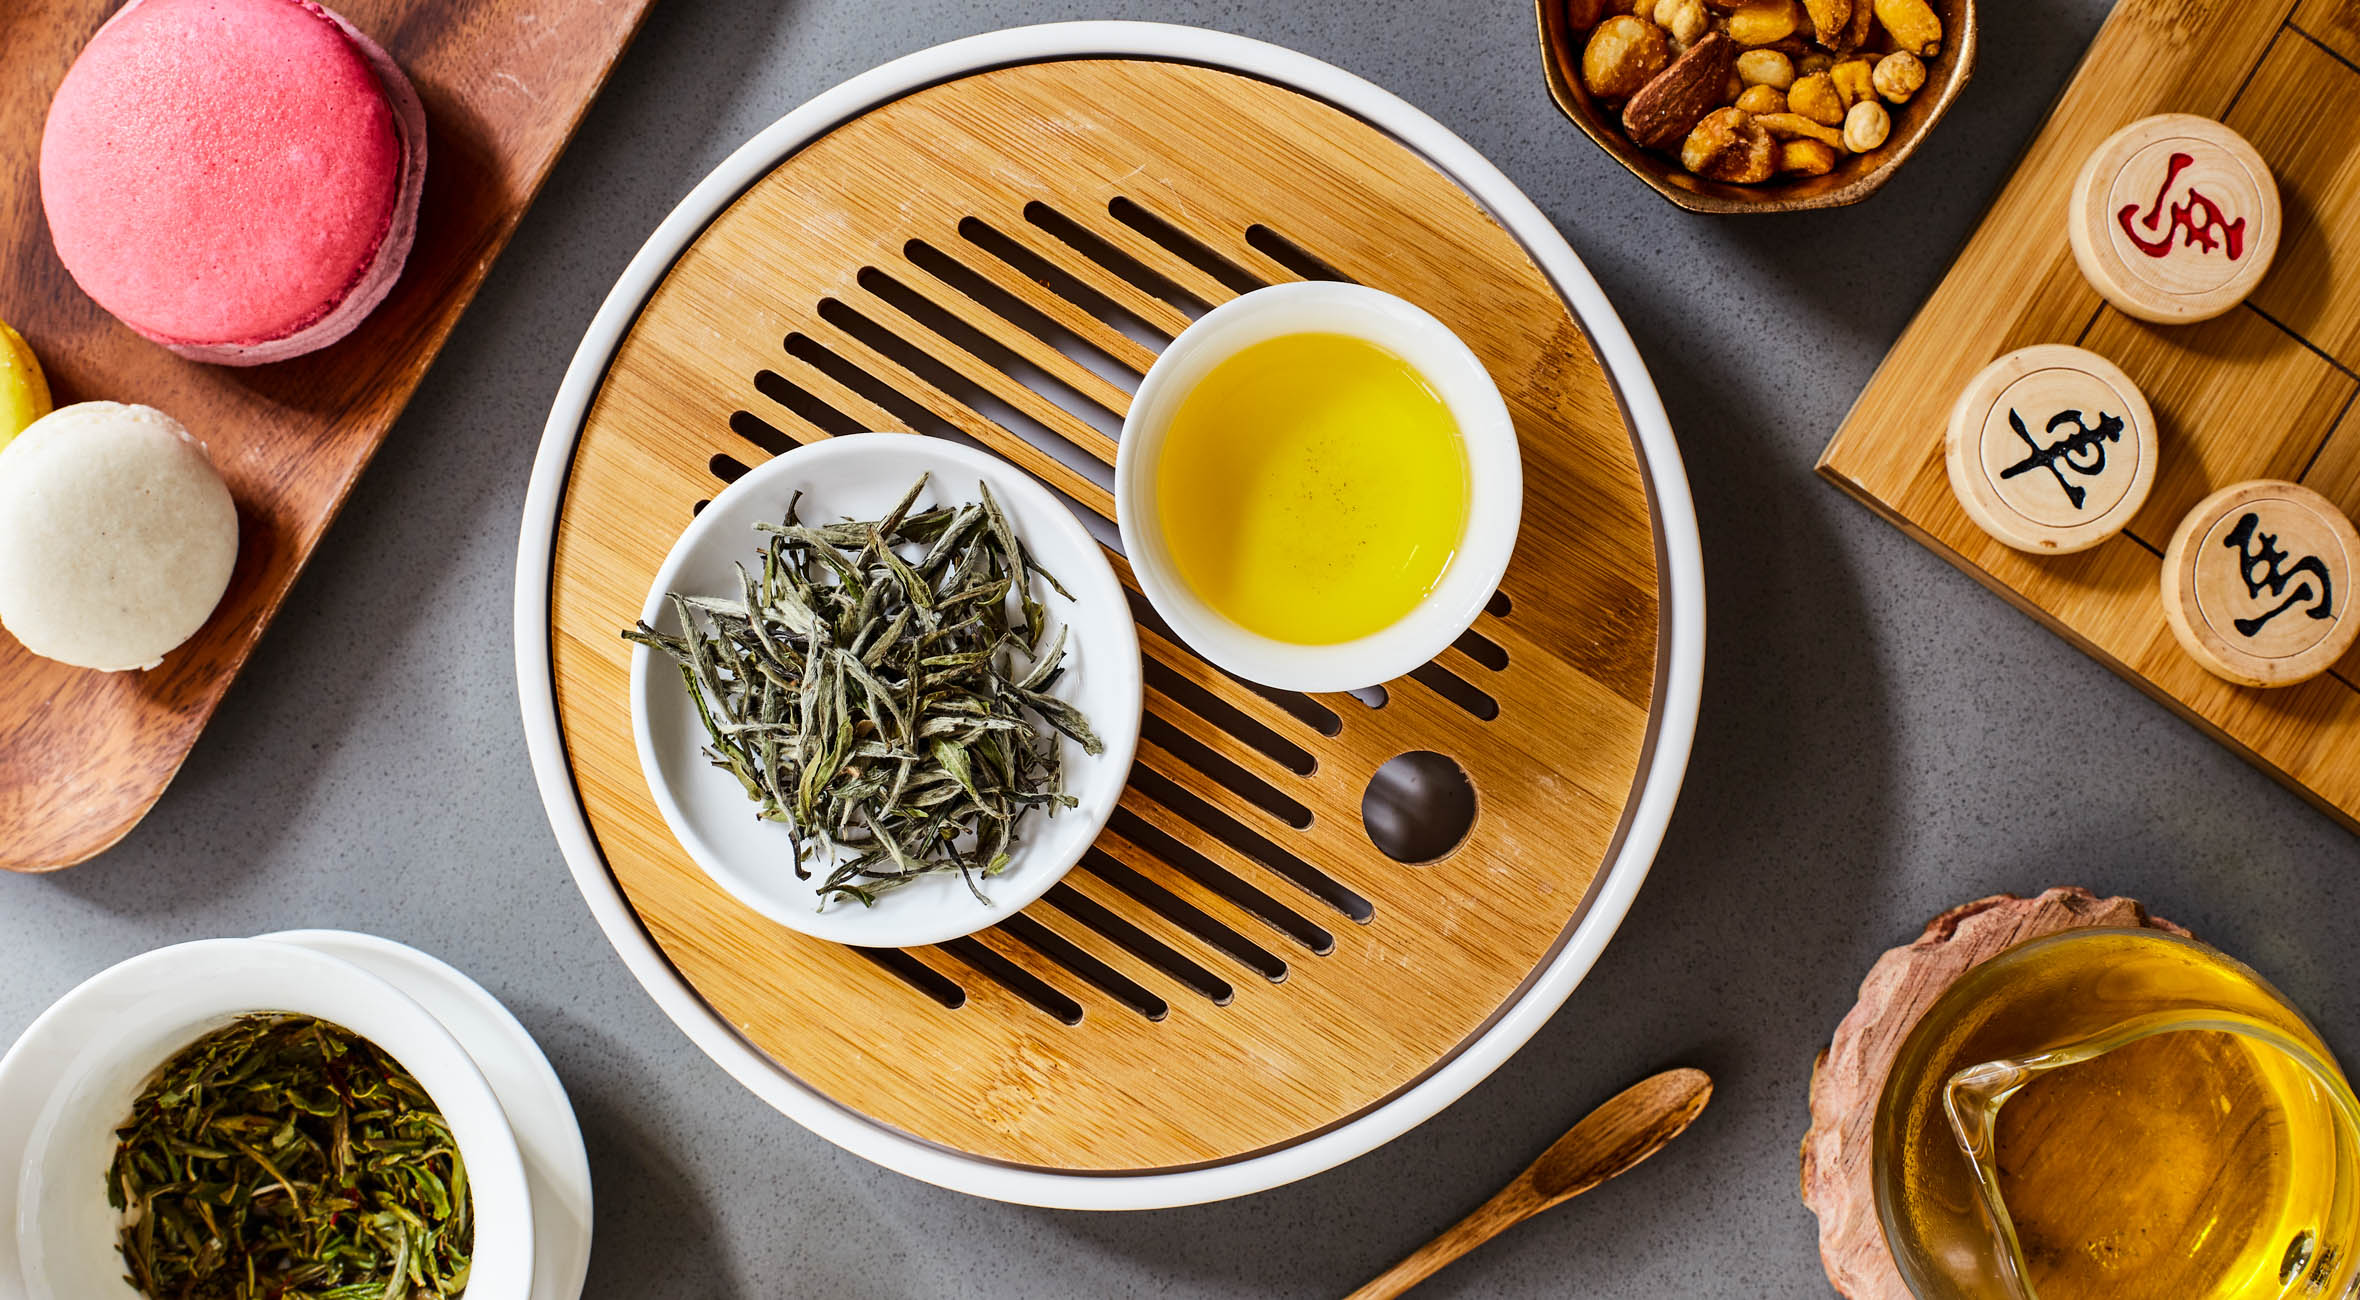 Choose Whatever You Like at Luv Tea – West Village Gem is a Heaven for Tea Lovers